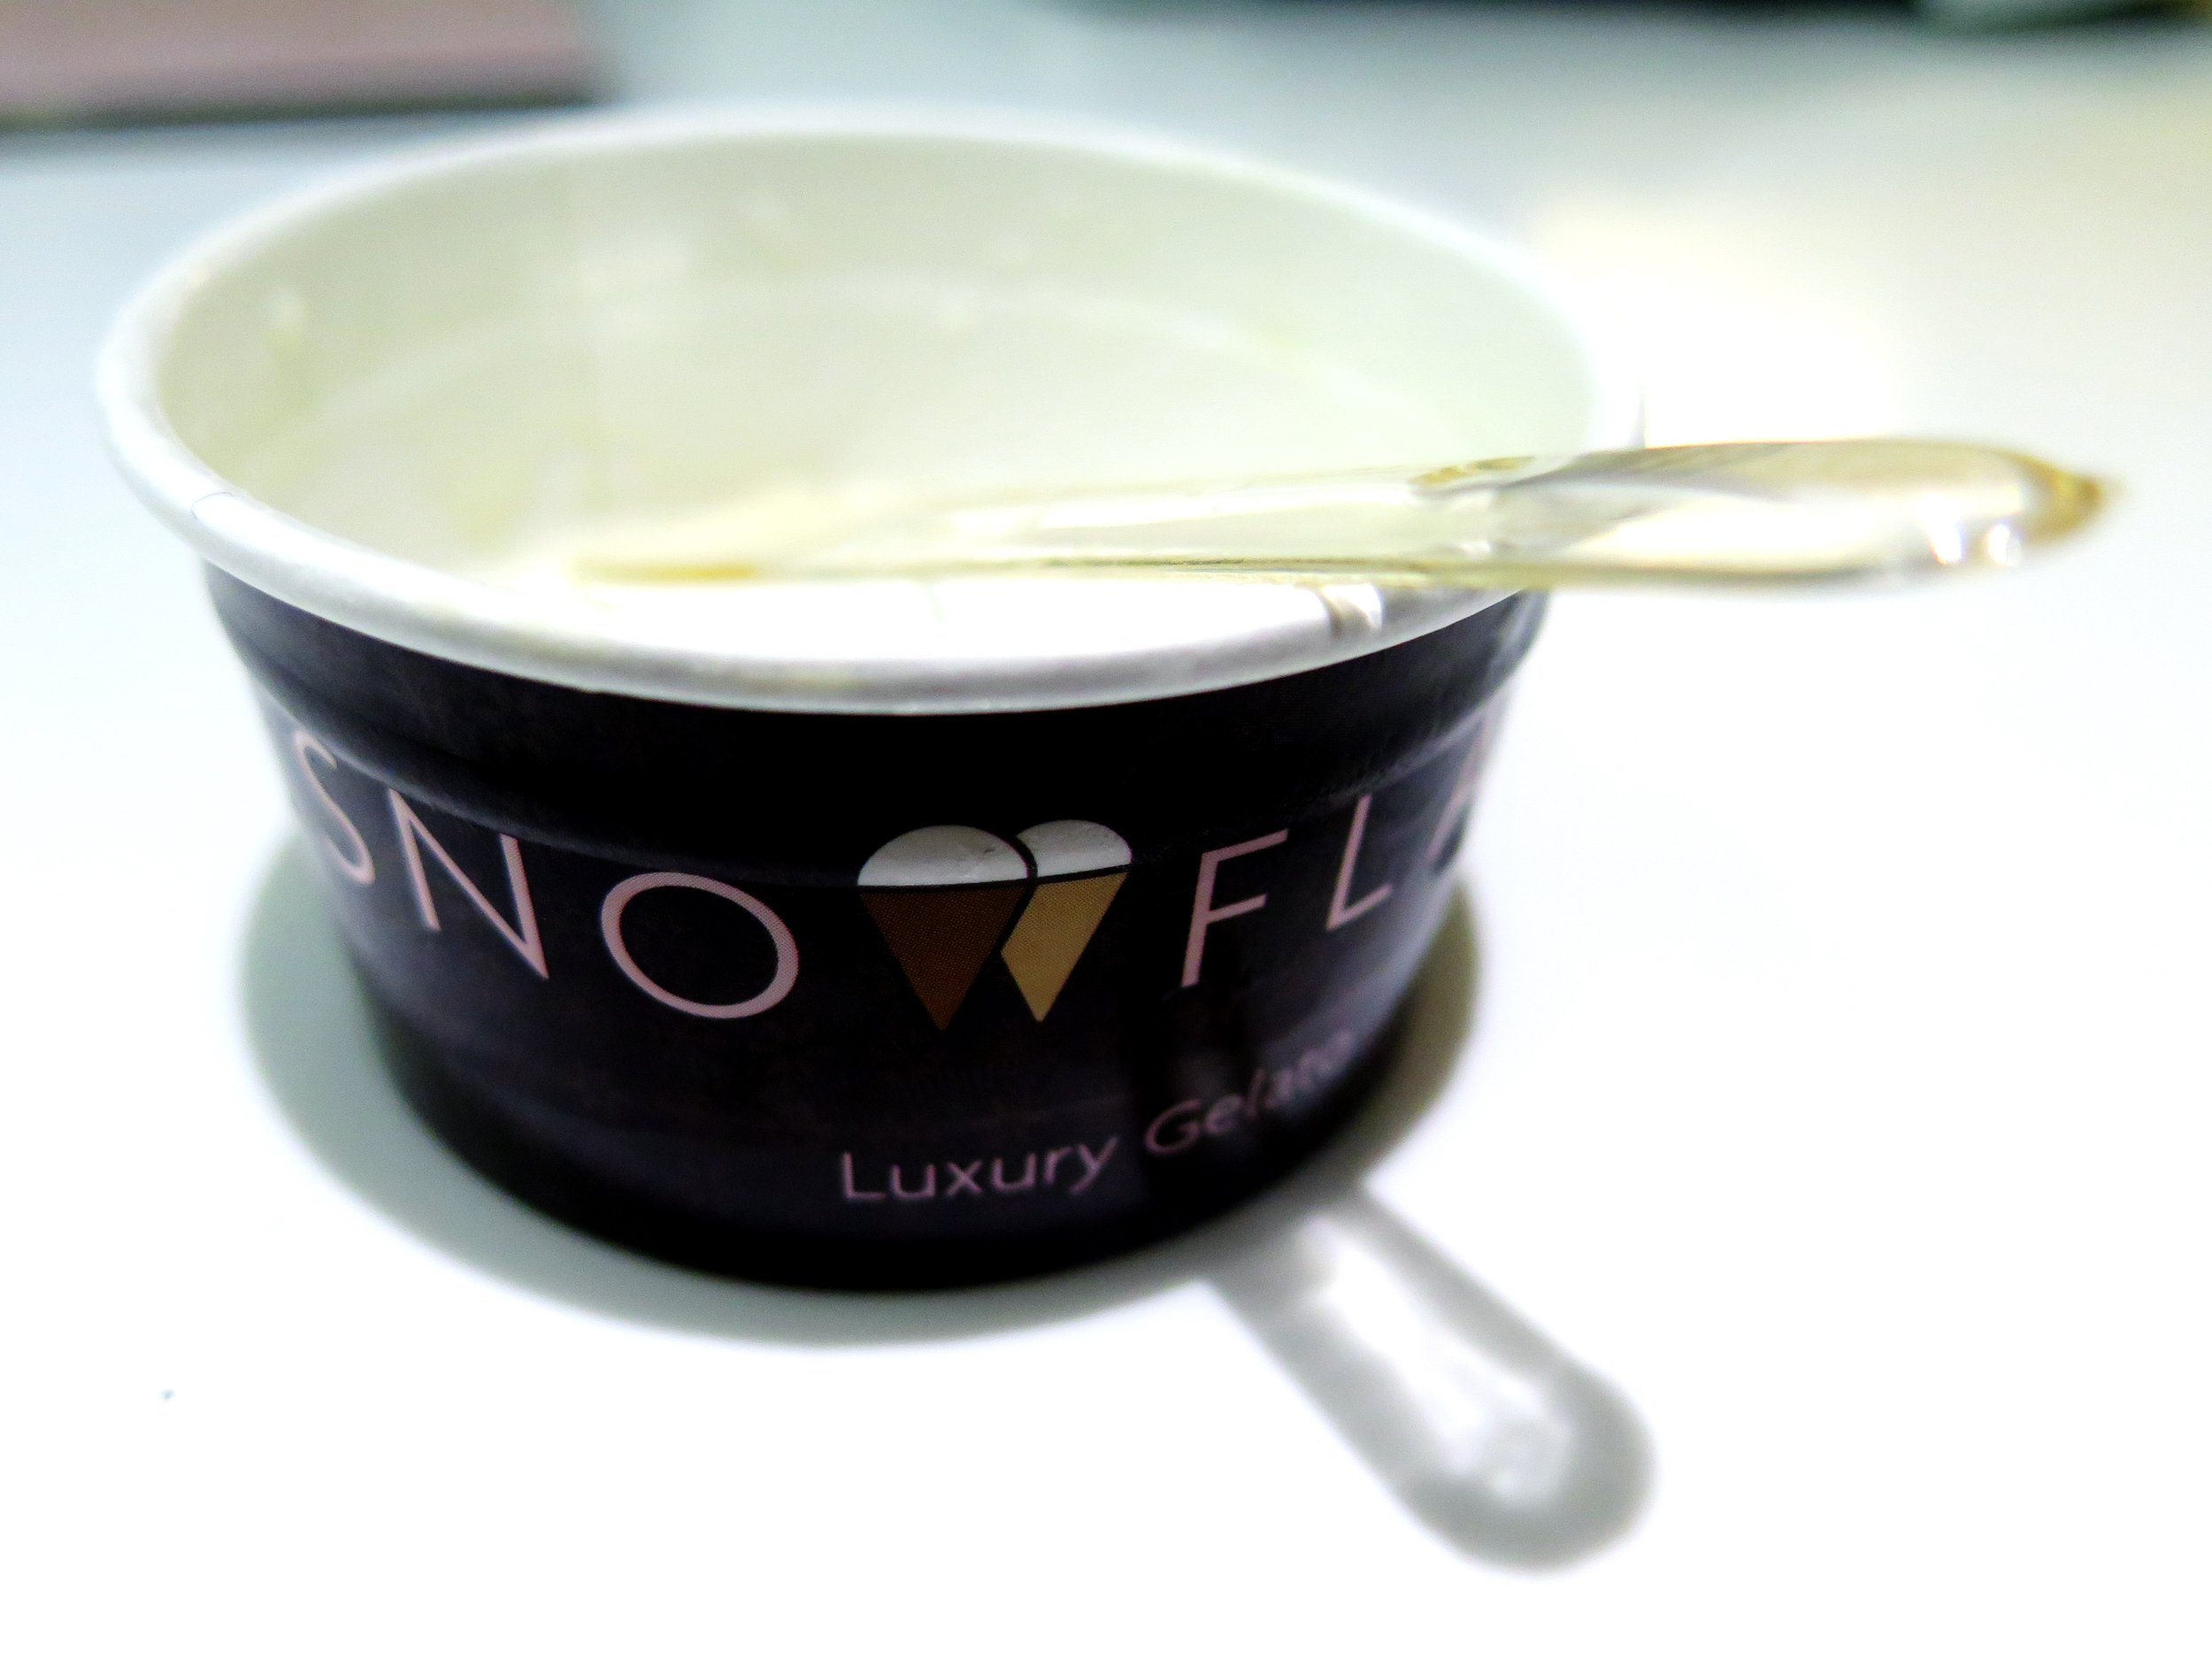 Snowflake Luxury Gelato, London - Review